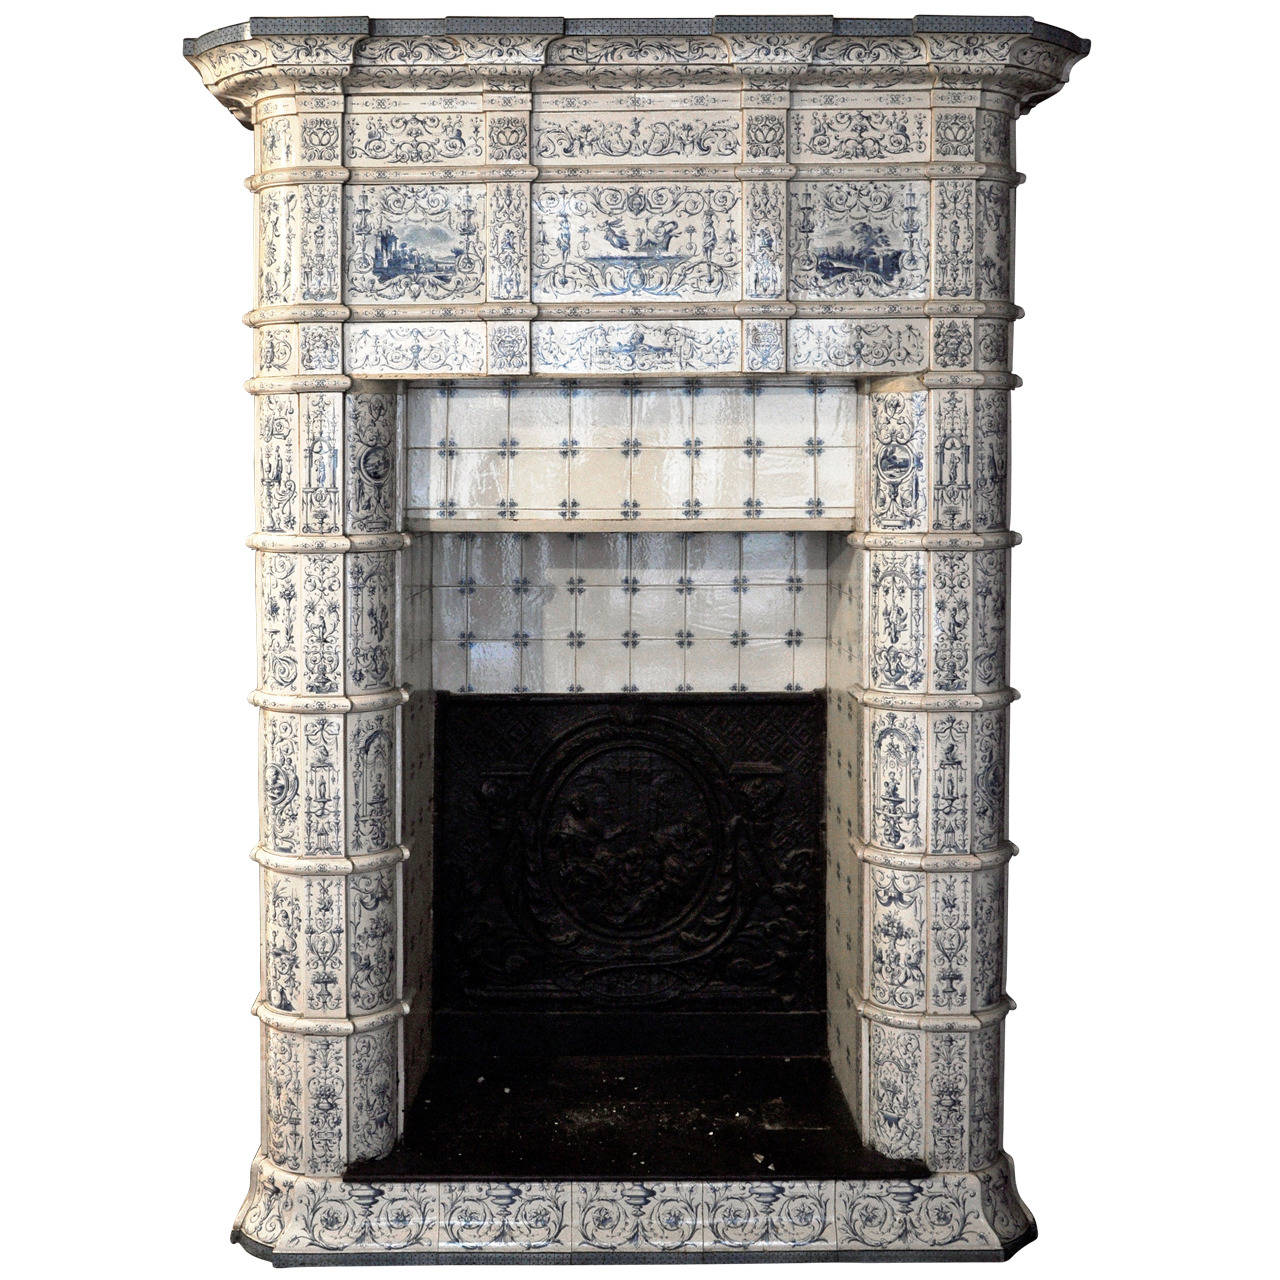 Antique ceramic fireplace with blue decor on a white background 19th century at 1stdibs - Decorating old fireplaces ...